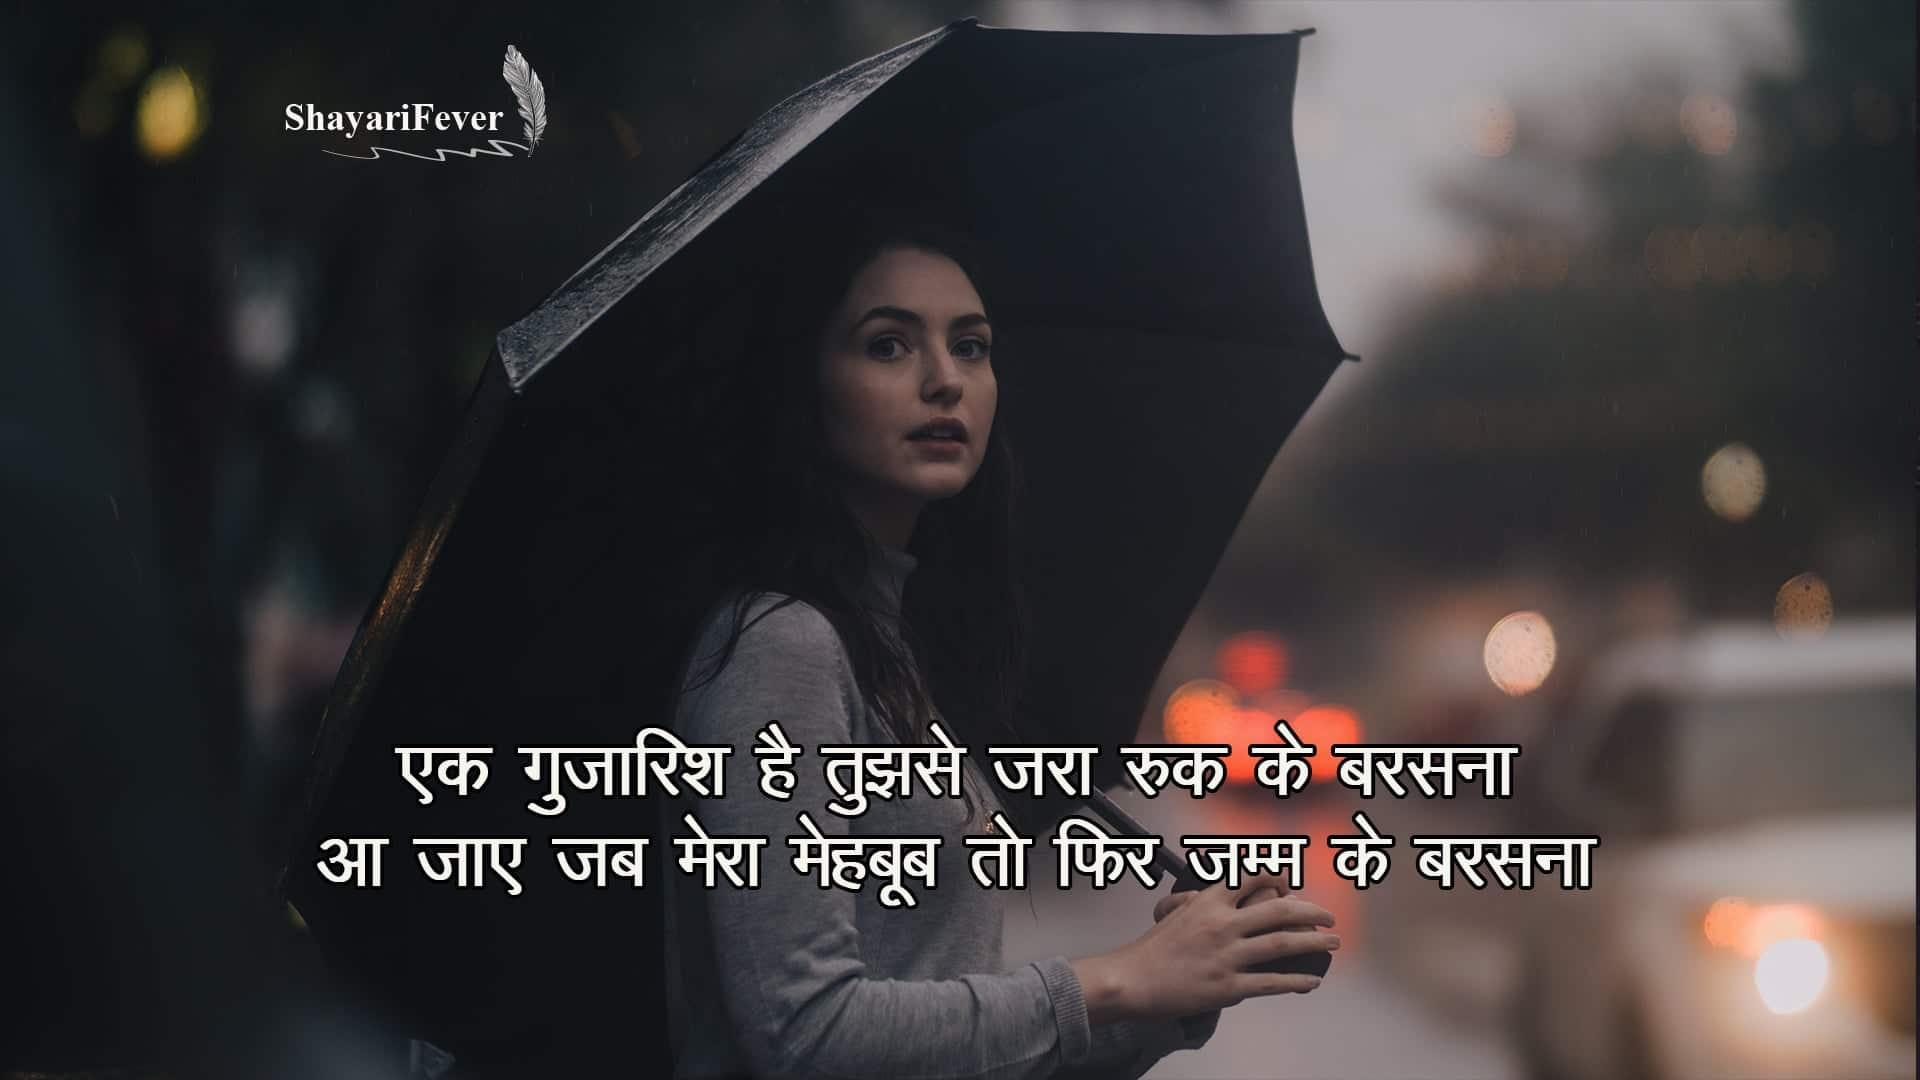 Barish Shayari Girlfriend